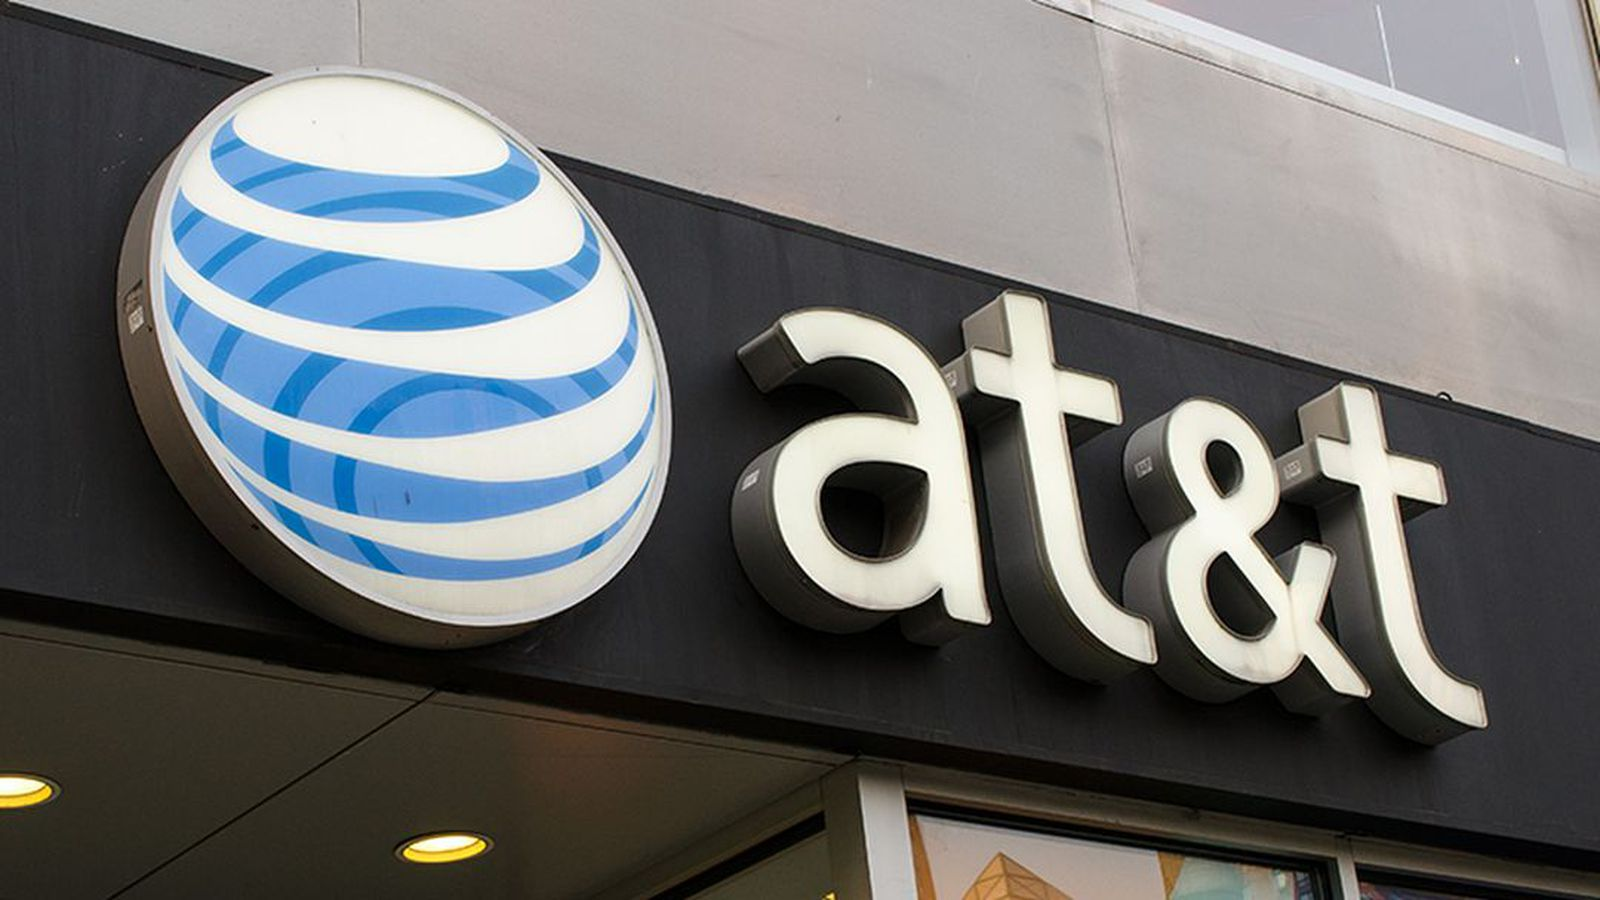 Net Neutrality Menu >> AT&T will start throttling mobile video streams starting next year - The Verge